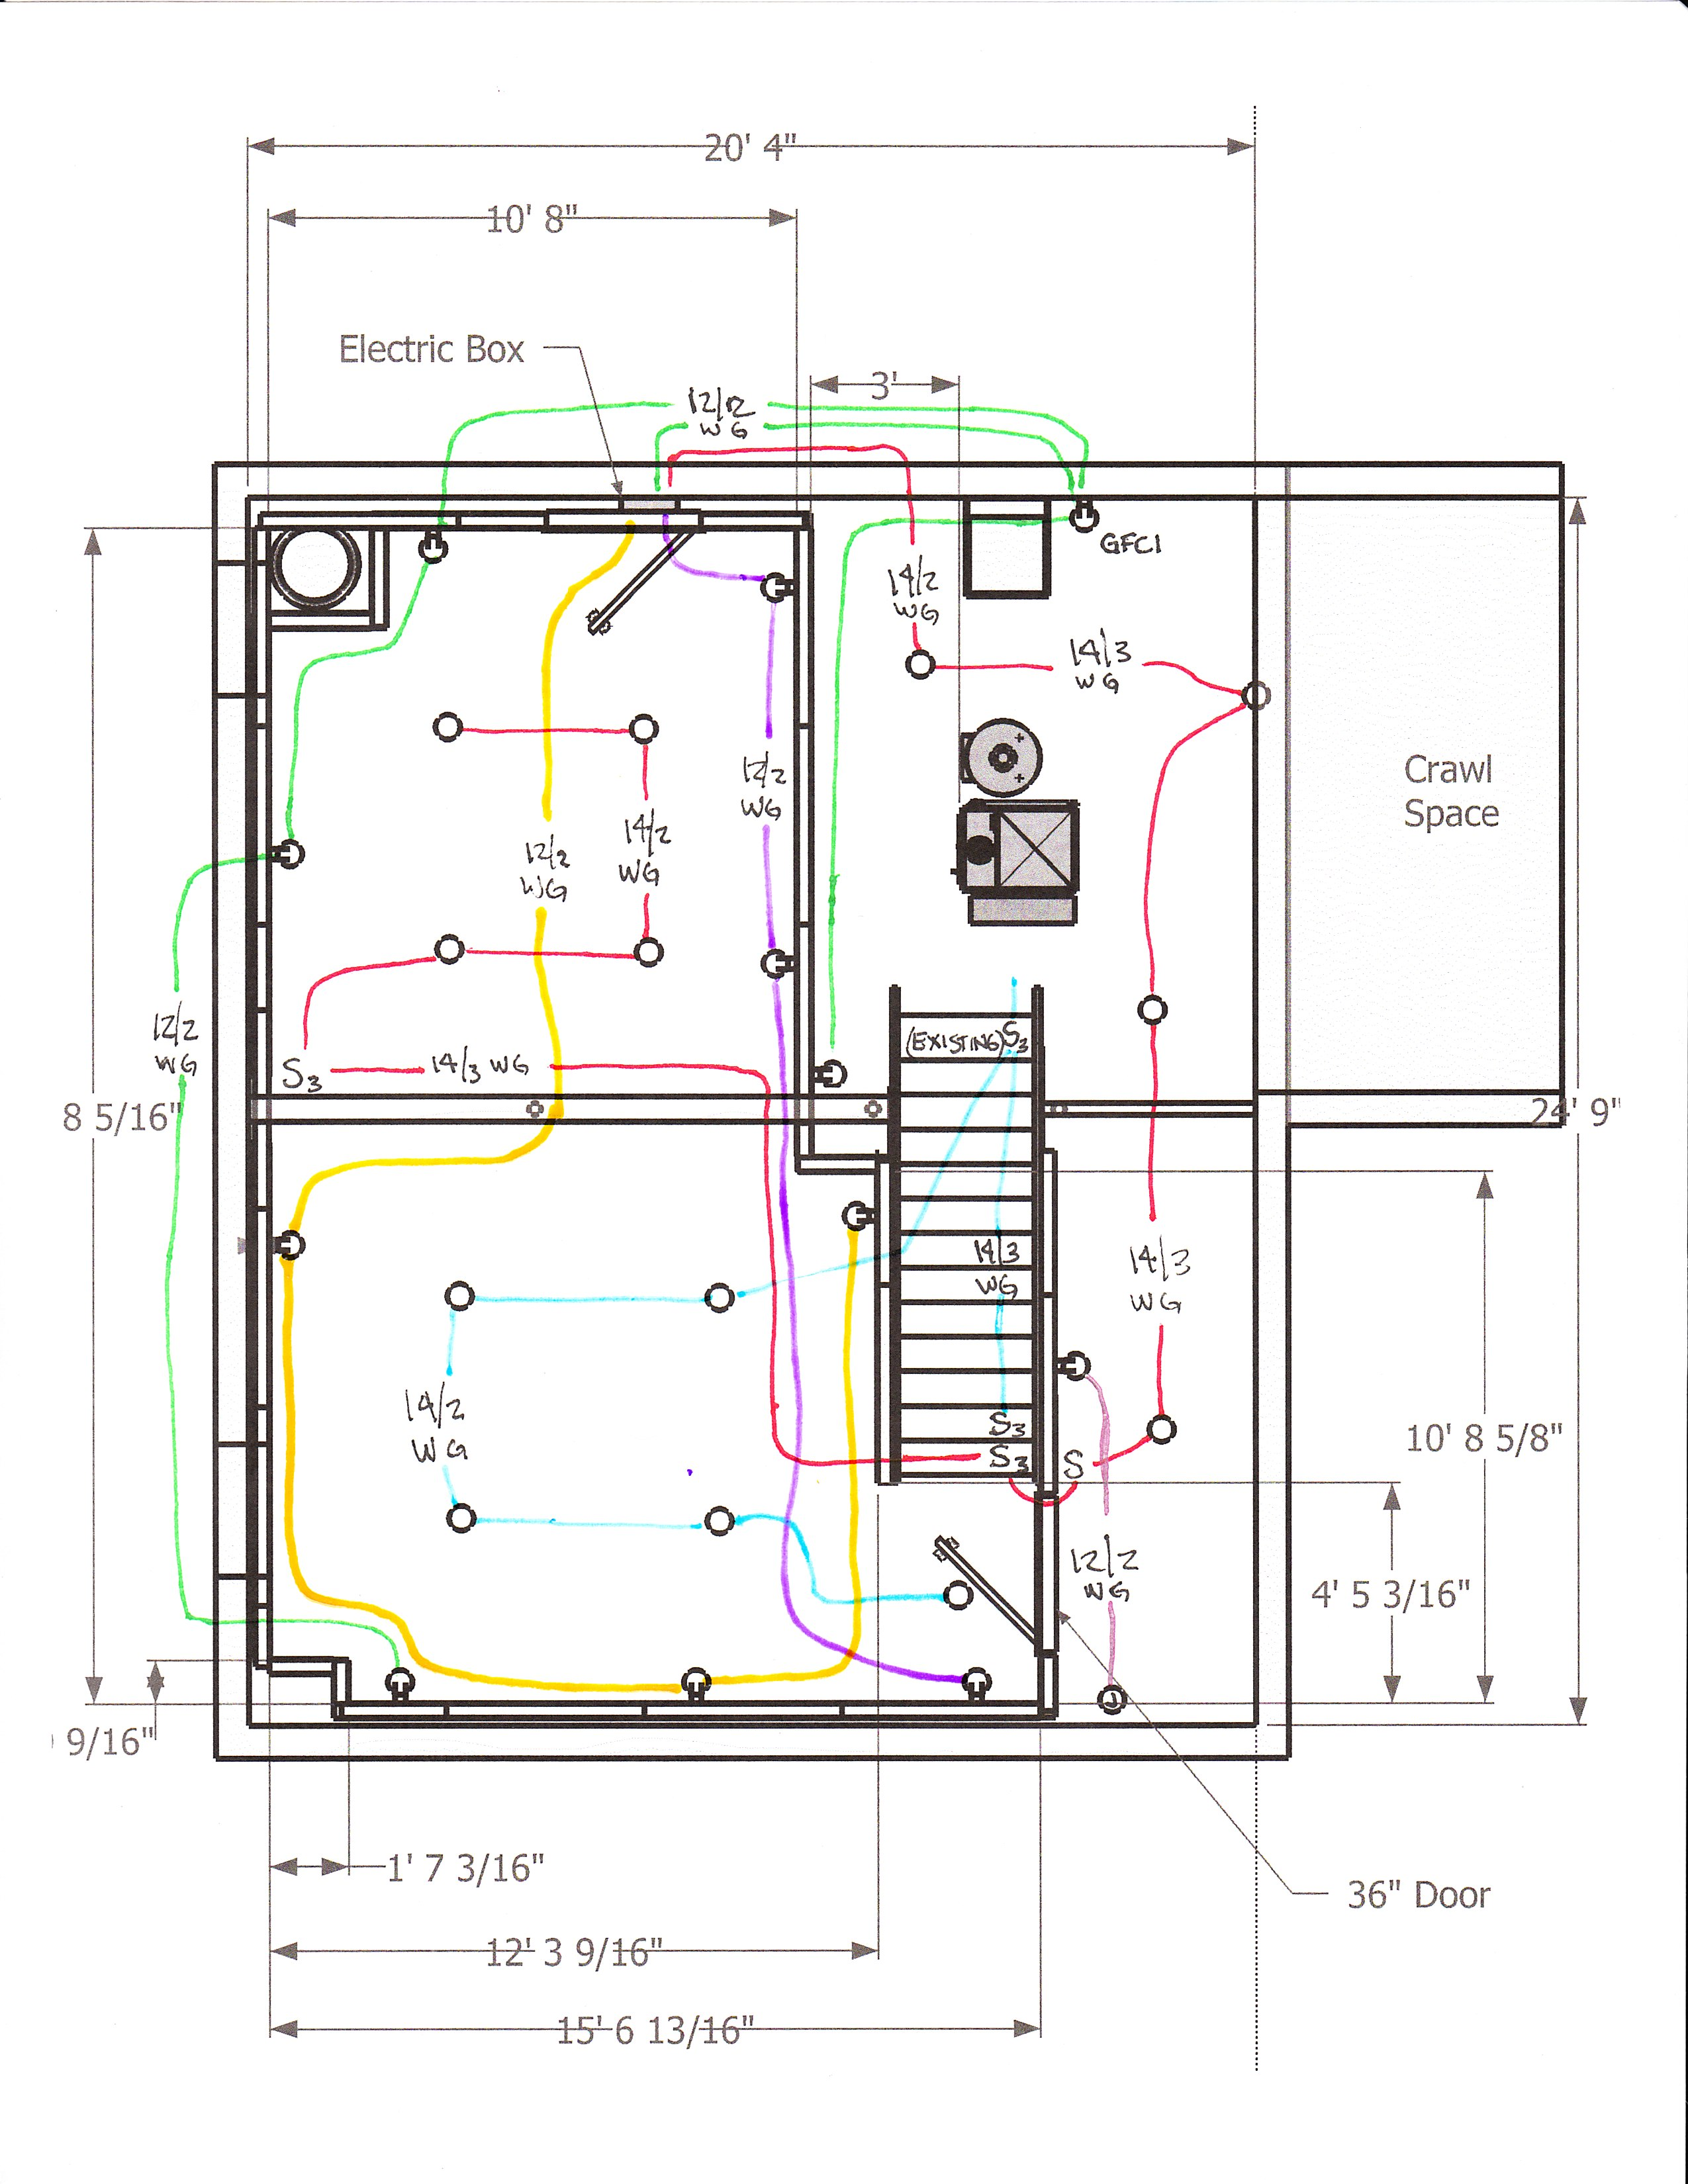 new finished basement wiring diagram century ac motor 230 volts my plan doityourself community forums